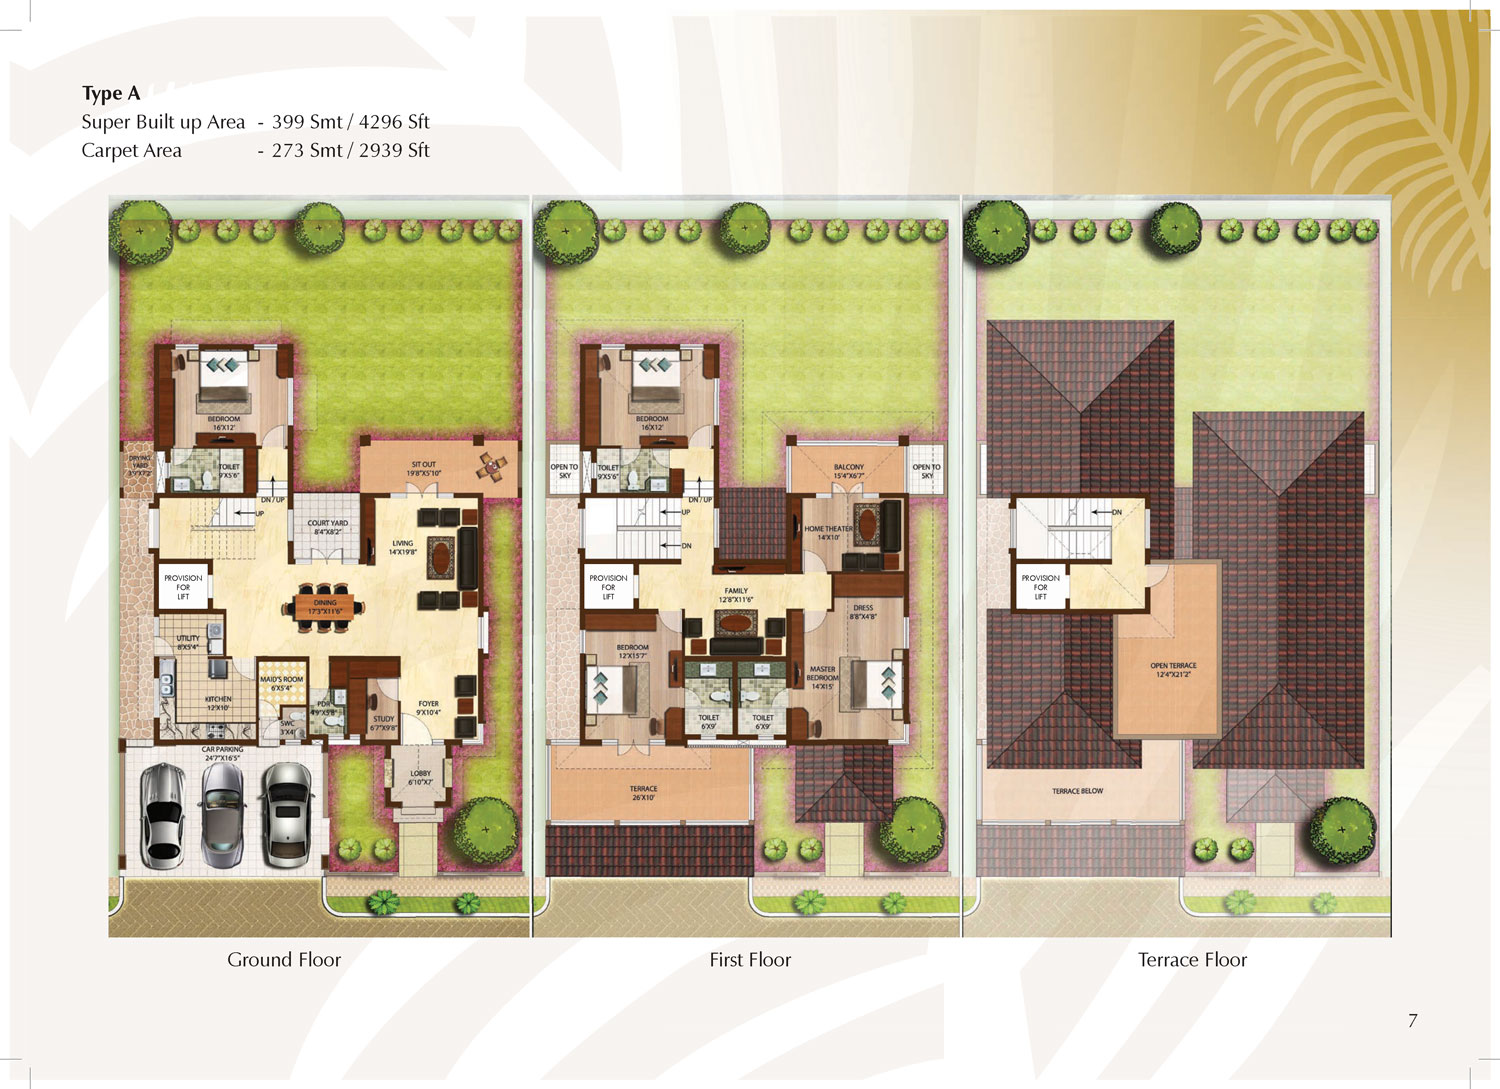 Type A - 4296 Sq Ft